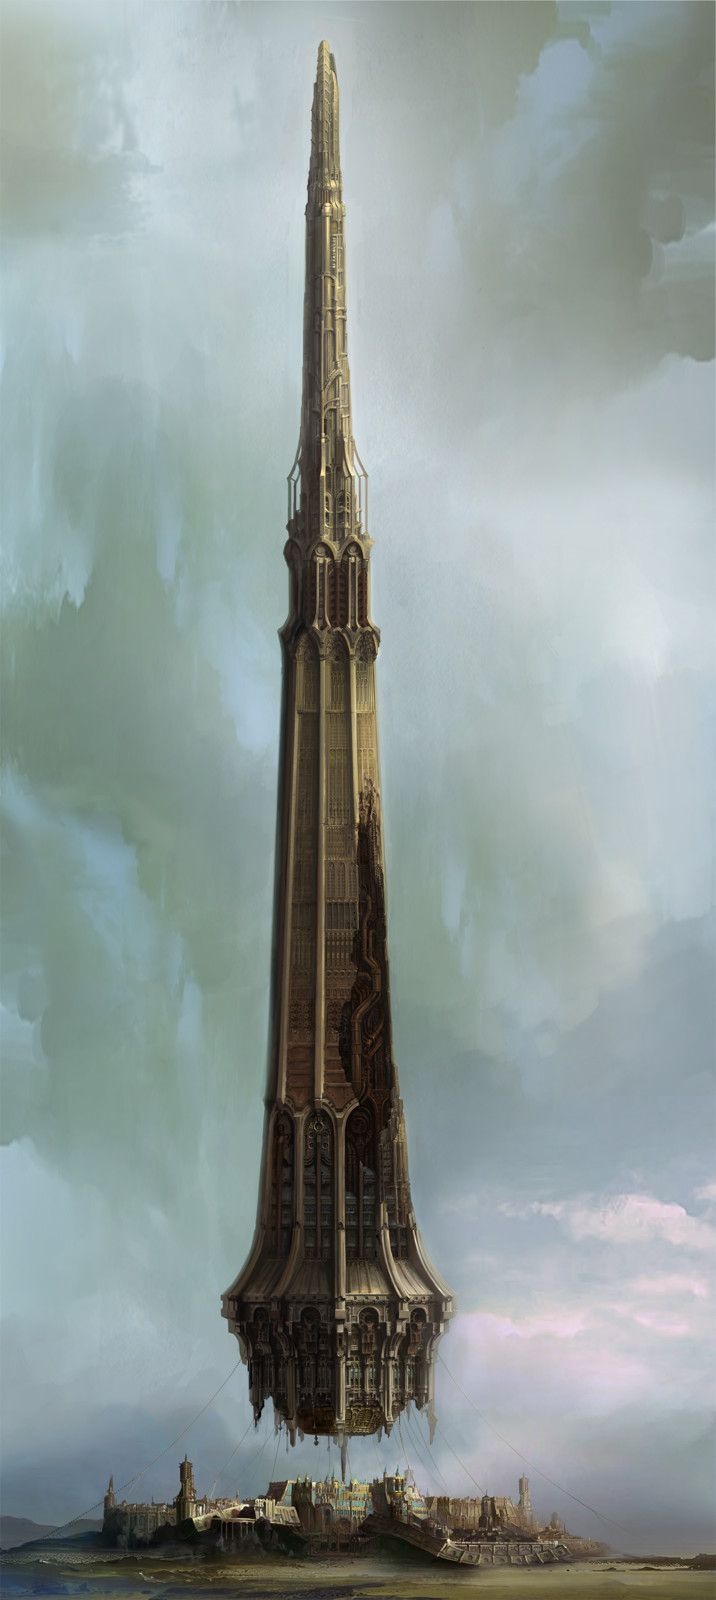 EIN- Tower 'Phlegyas', Choong Yeol Lee on ArtStation at https://www.artstation.com/artwork/LlBKv